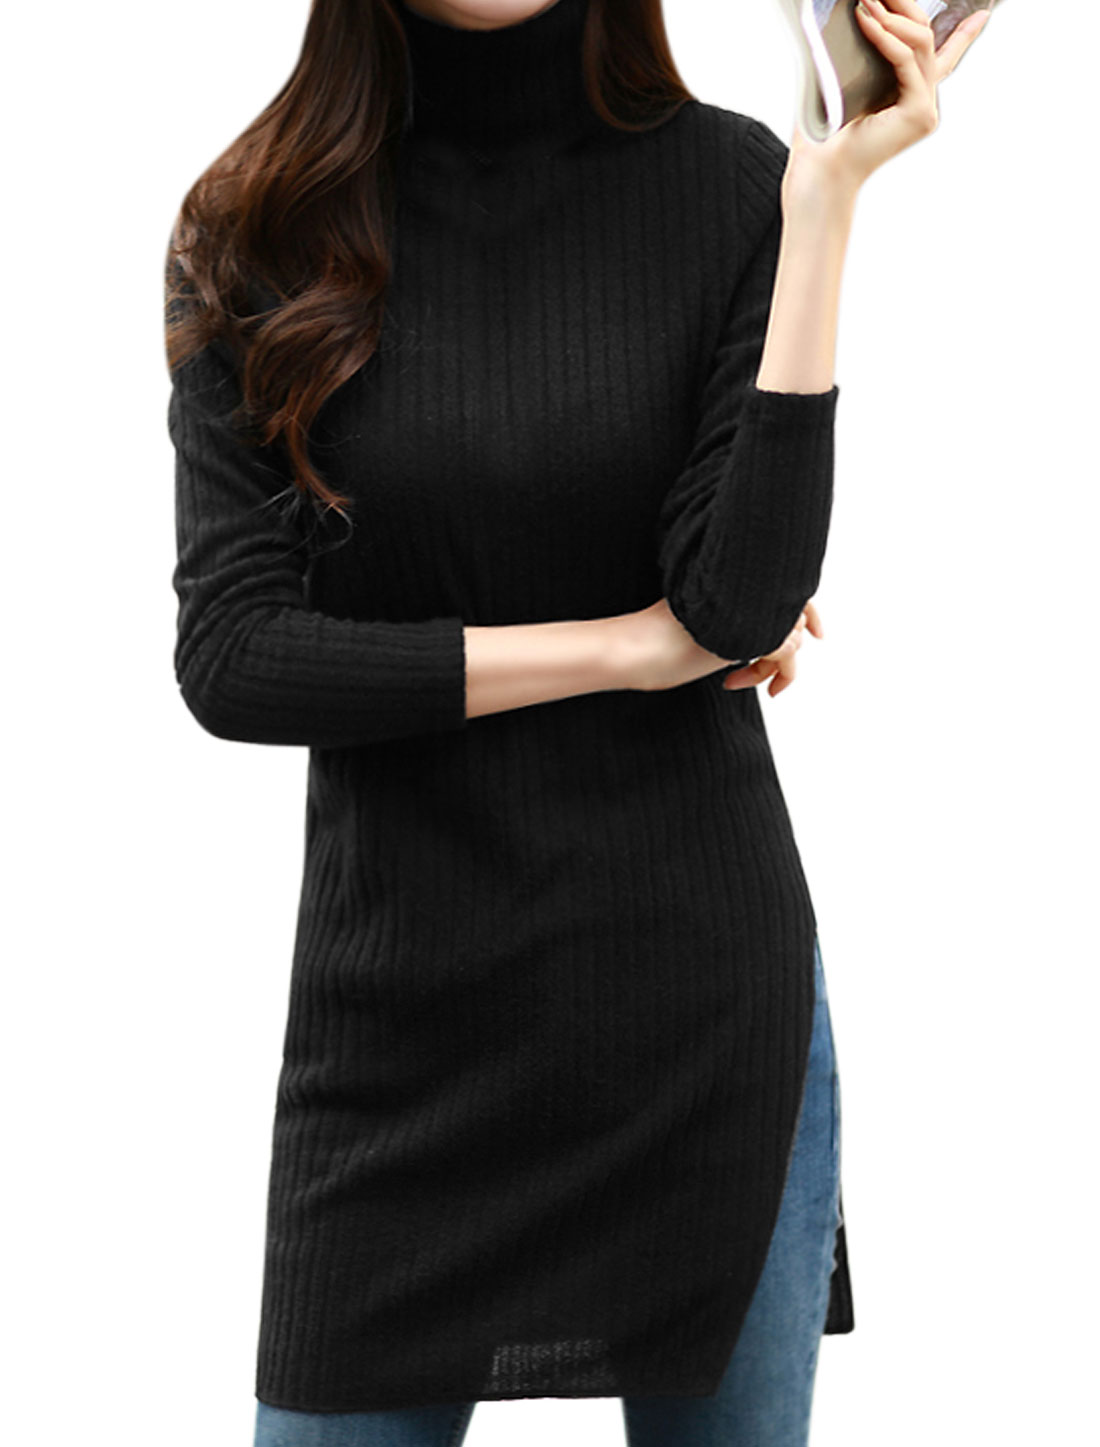 Women Turtle Neck Side Split Tunic Knit Shirt Black XS